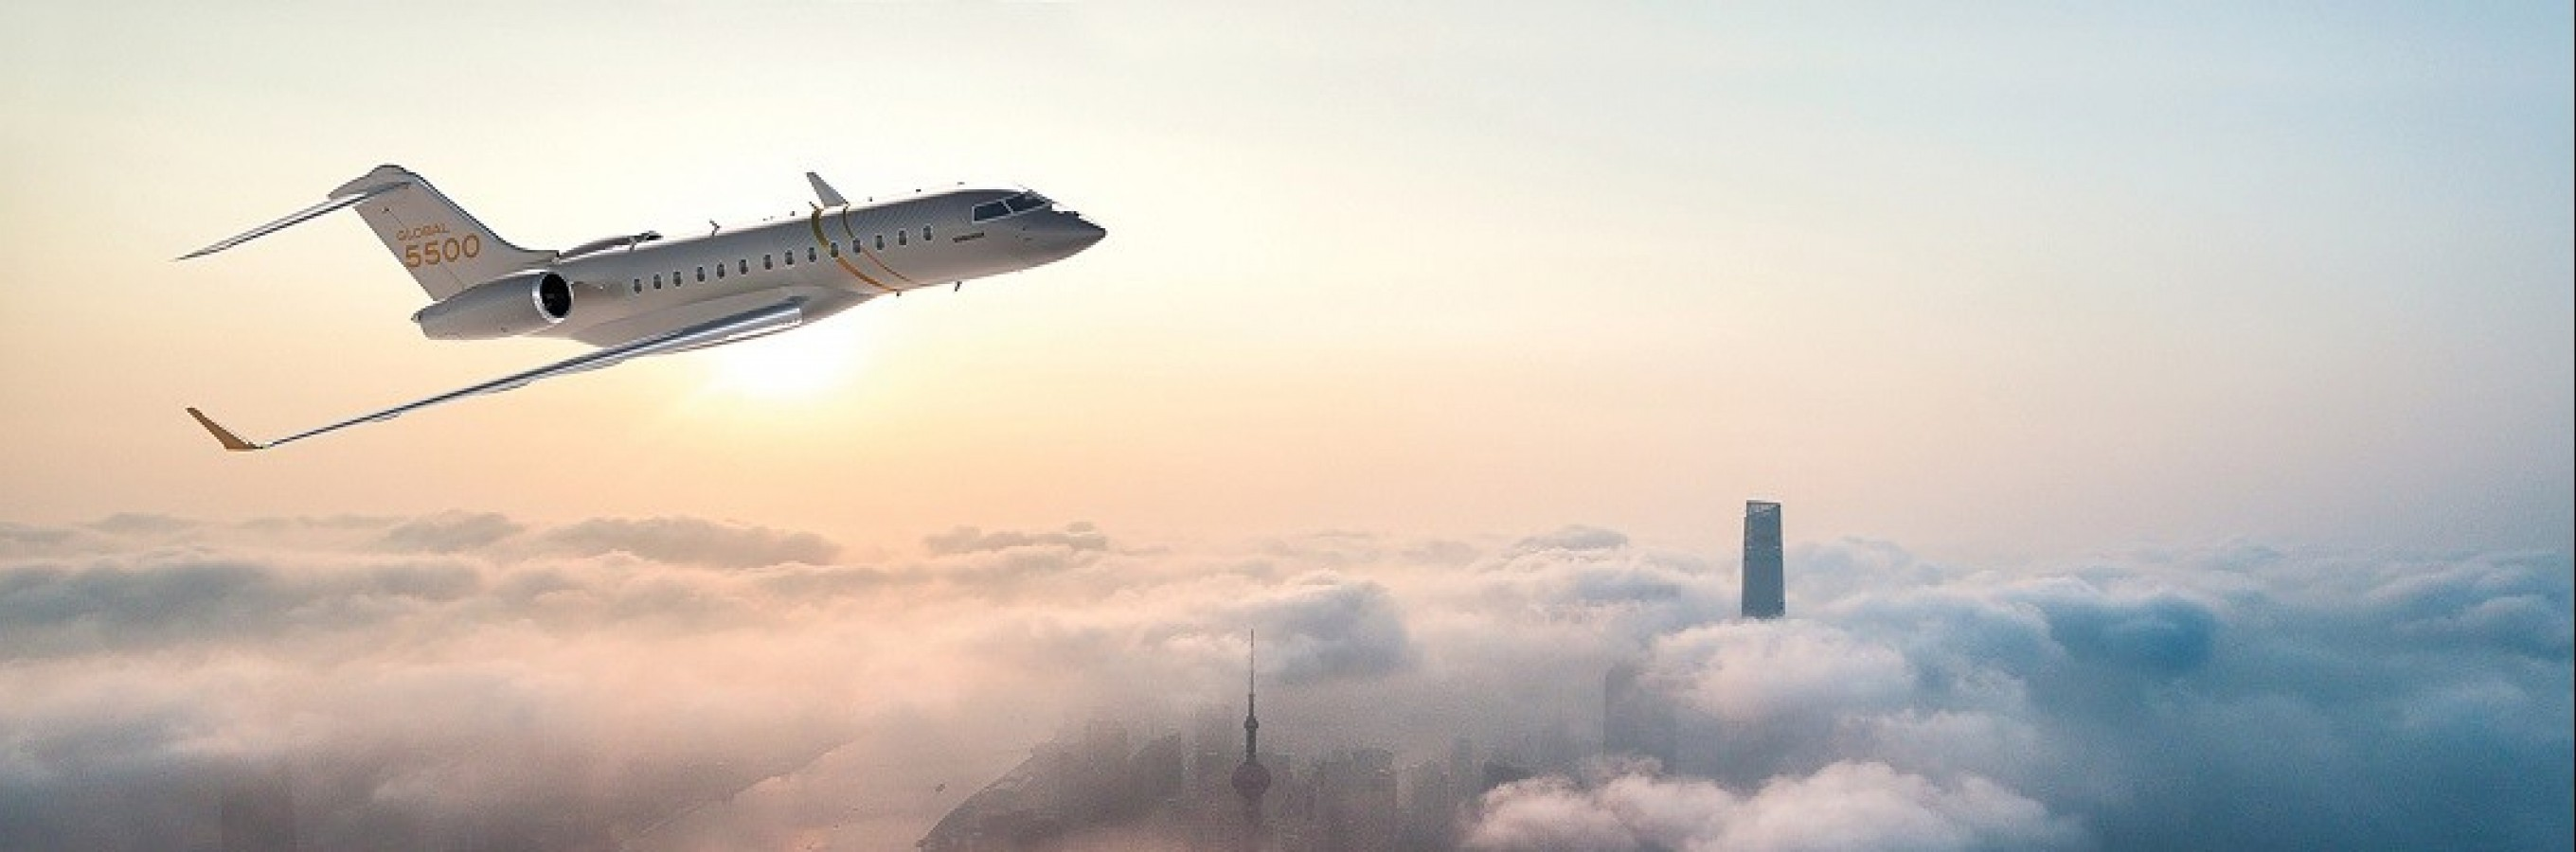 The Global 5500 jet soars above the clouds.